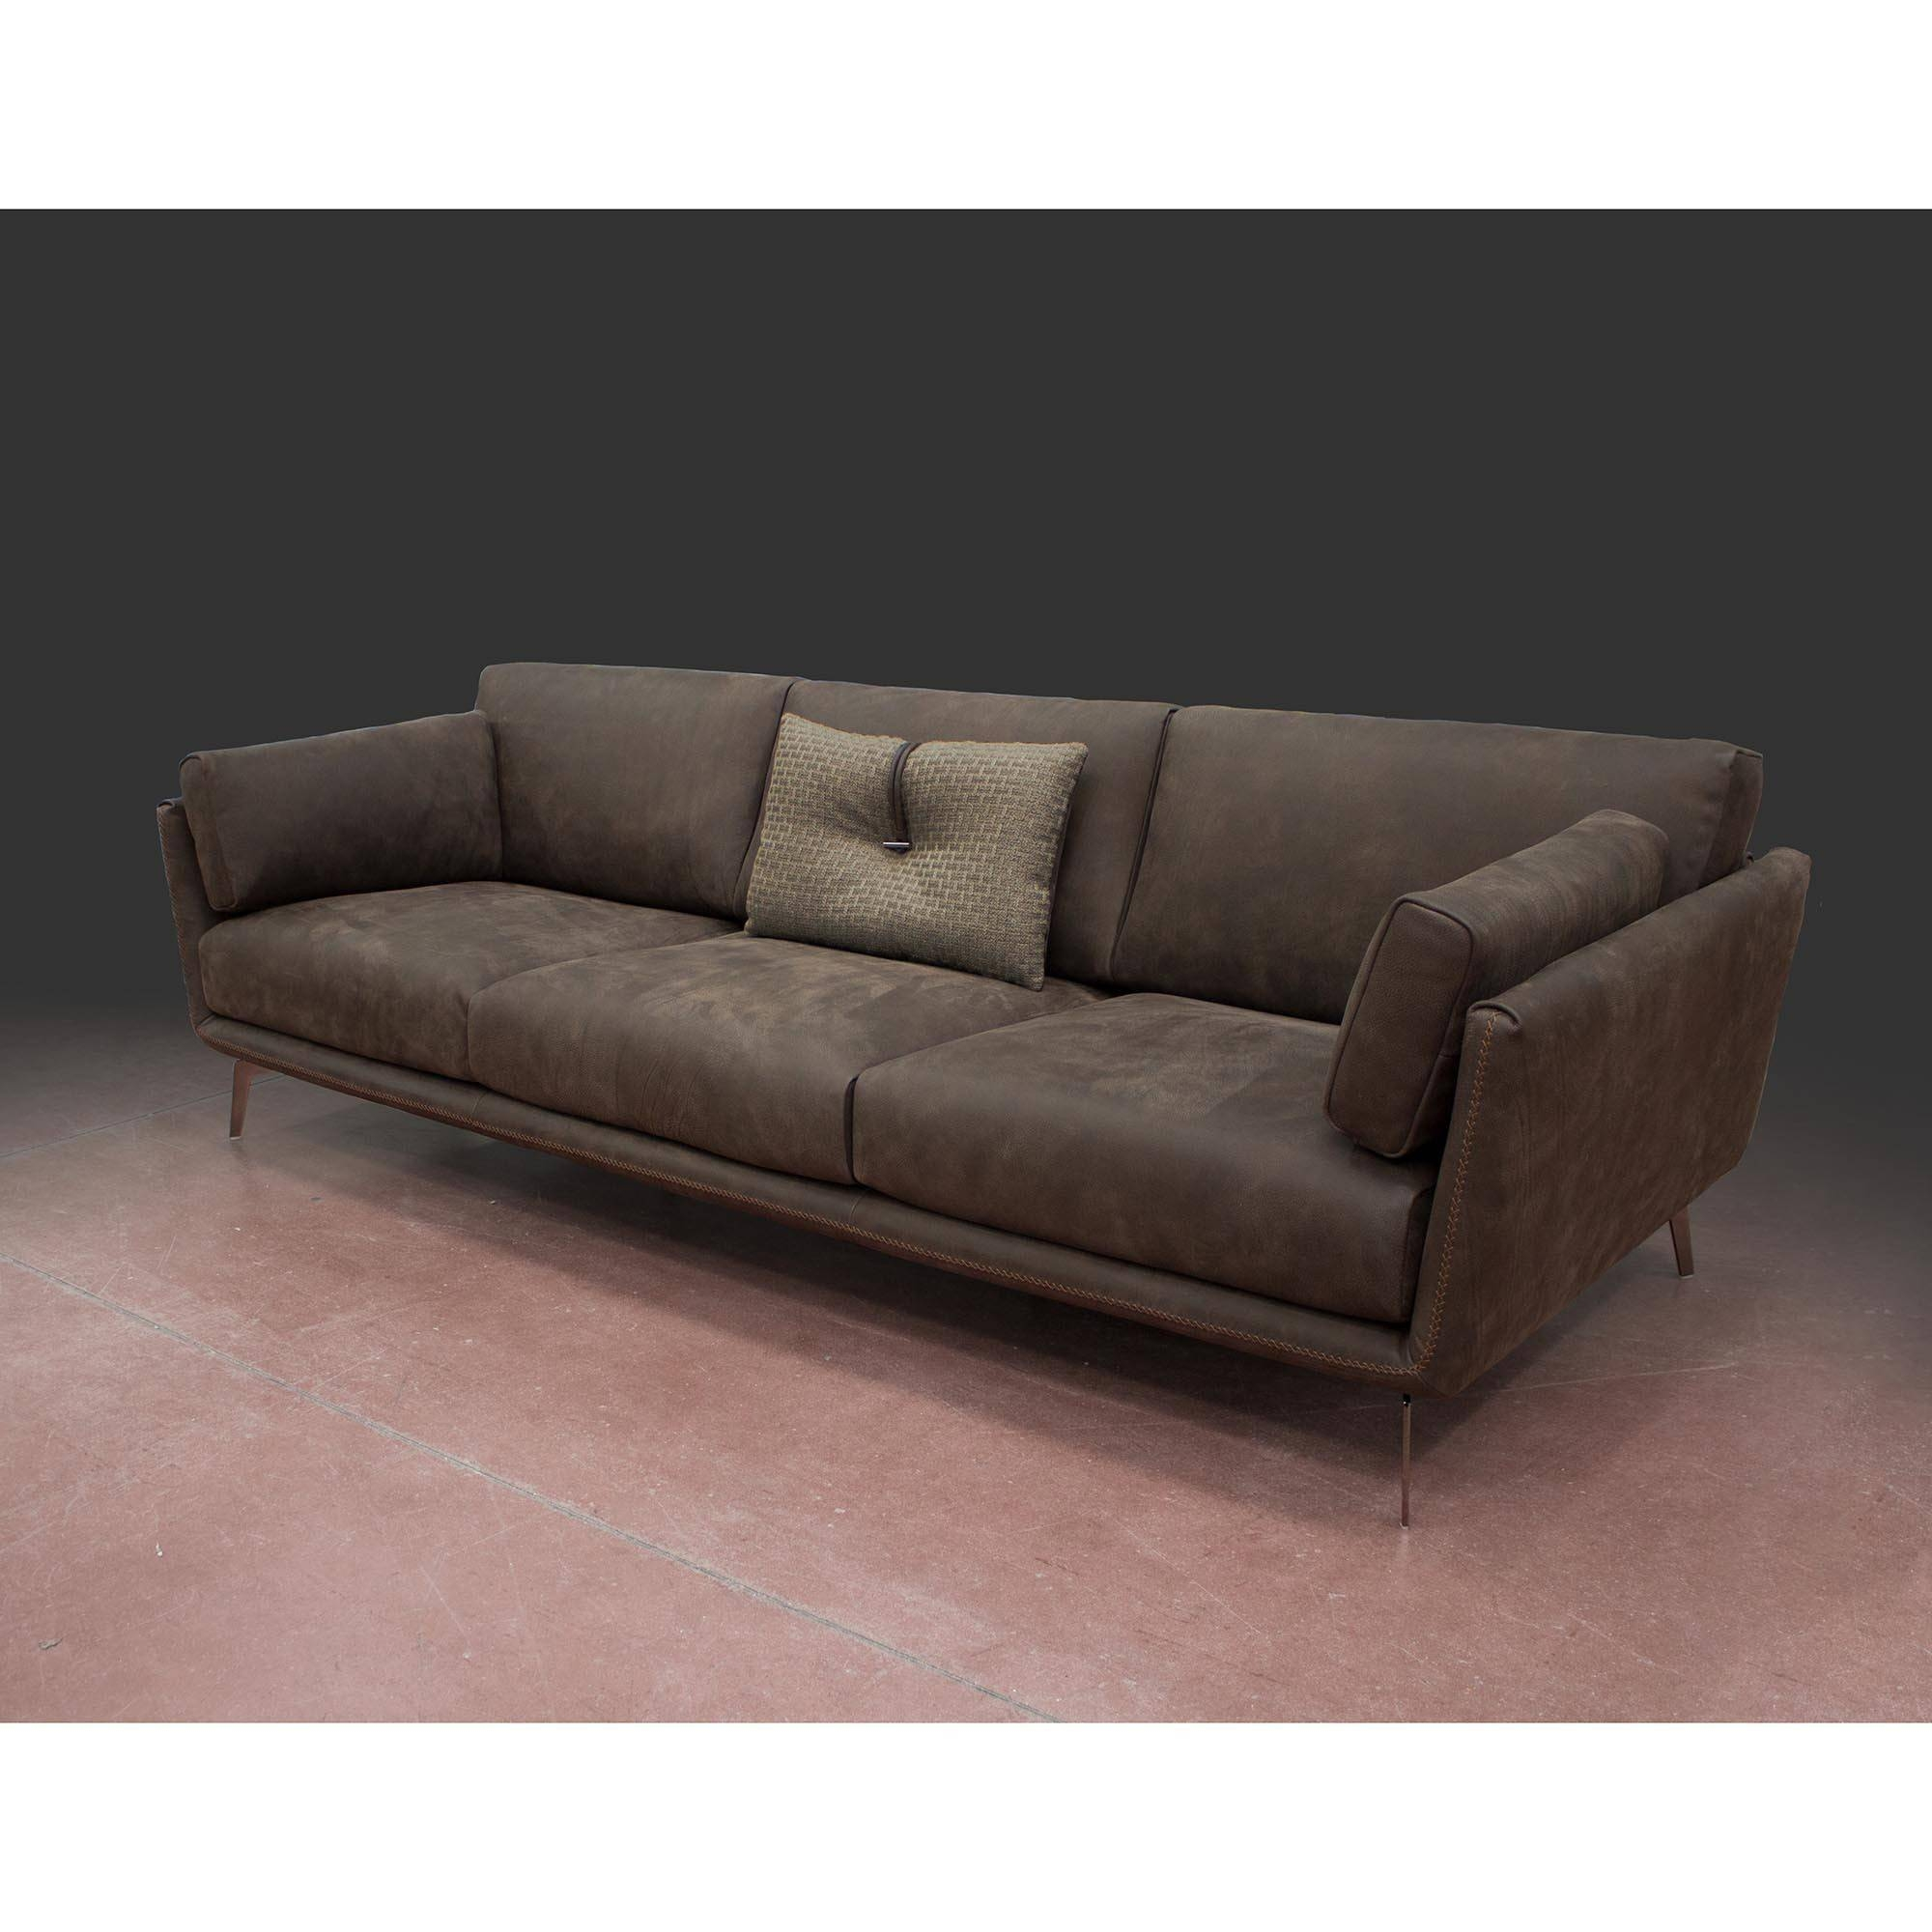 Ralph Sofa - Man Cave For The Modern Man - Trend - More Ways To Shop pertaining to Cantoni Sofas (Image 11 of 15)